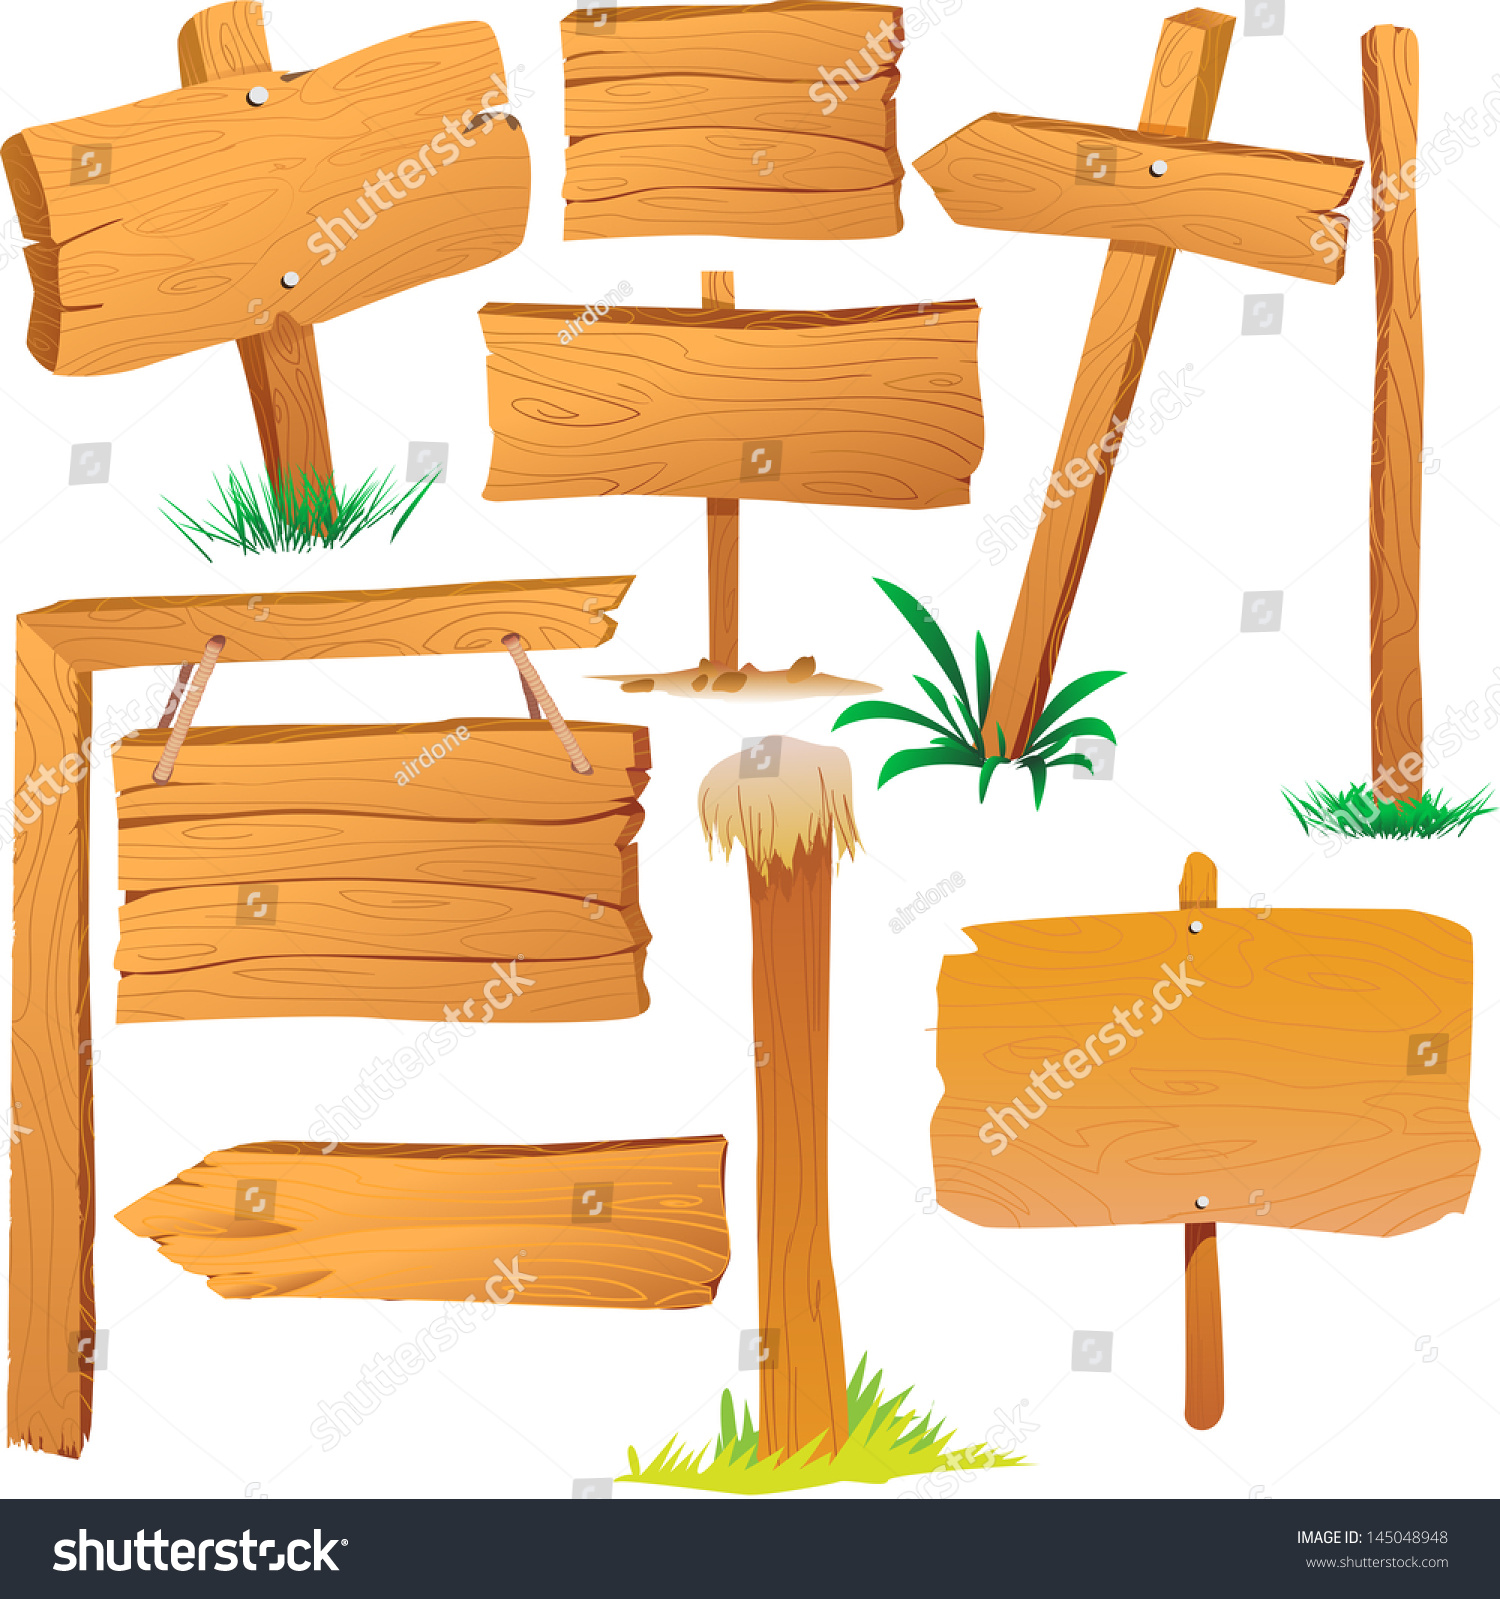 Wooden sign boards cartoon style stock vector